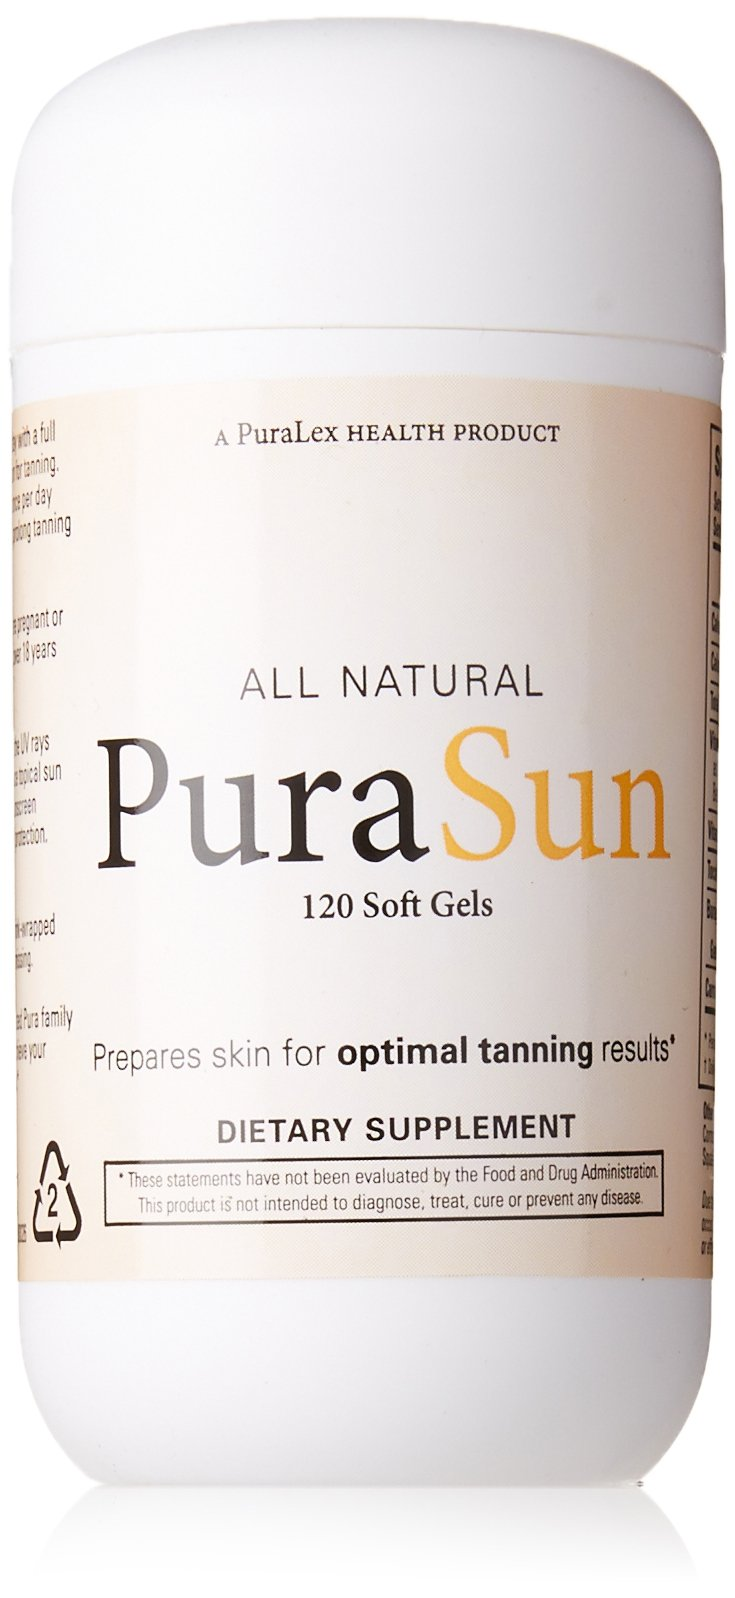 Amazon.com: PuraSun All Natural Dietary Supplement, 120 Soft Gels: Health & Personal Care